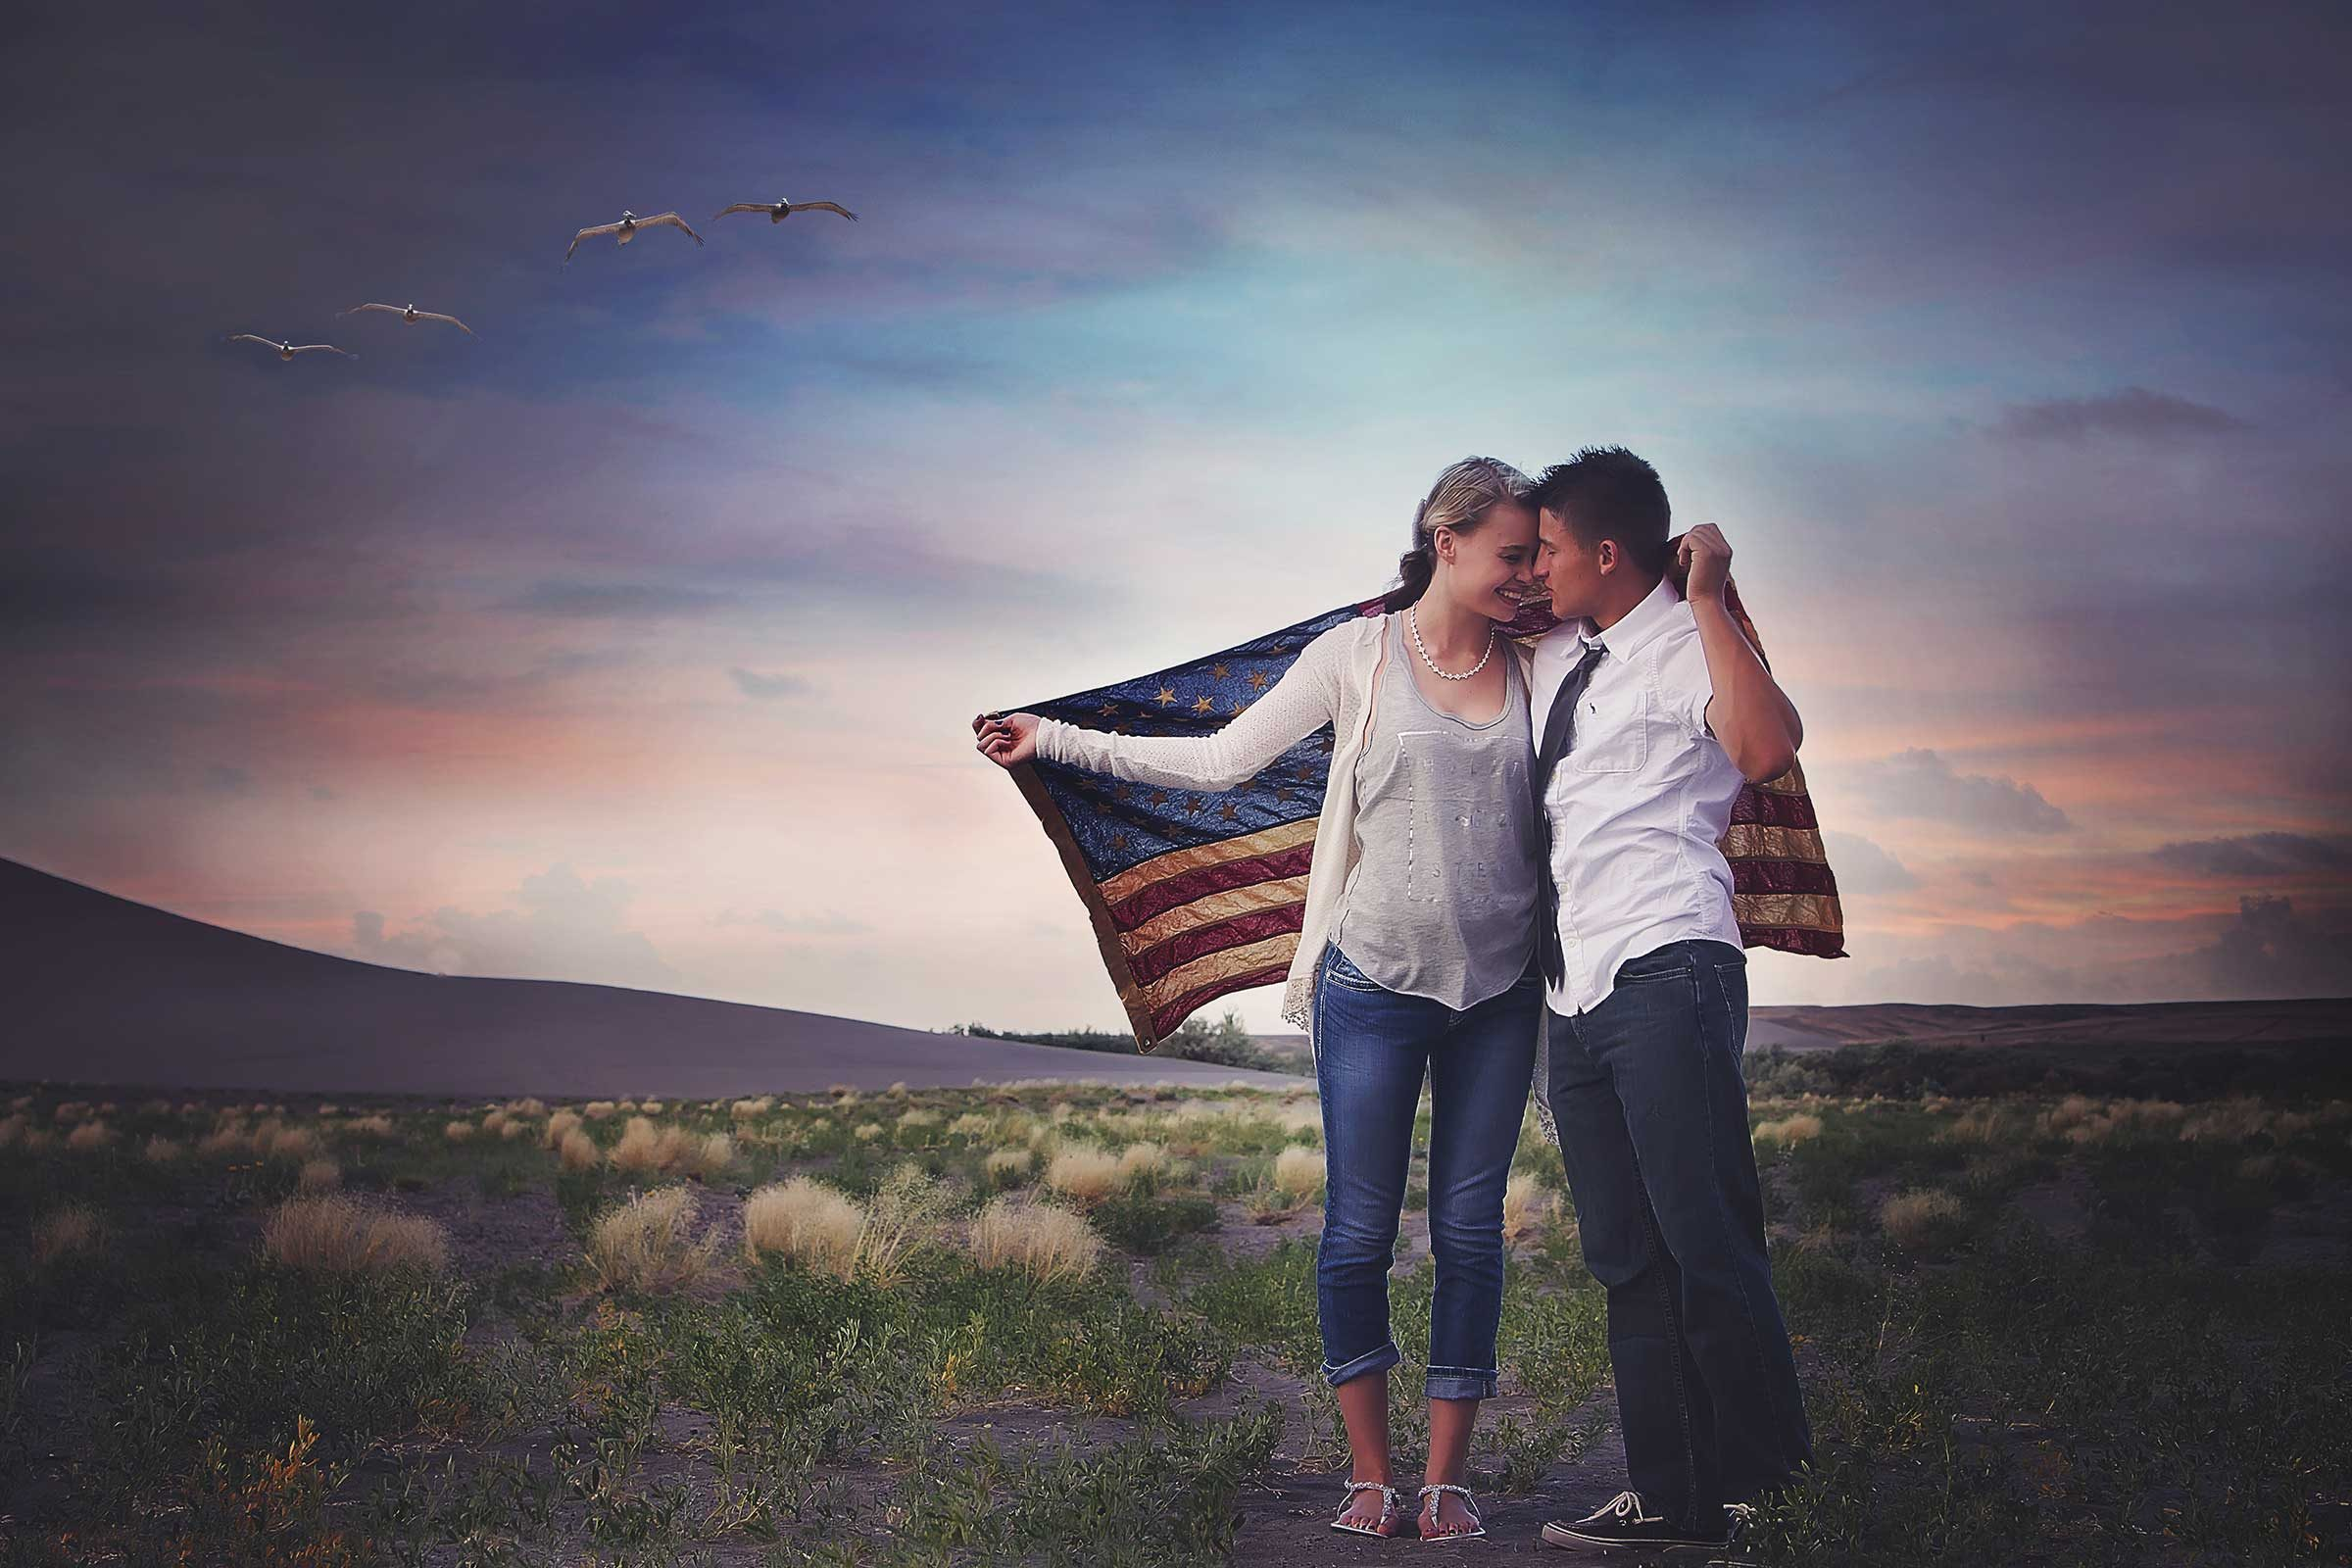 portrait of a couple holding the american flag around themselves standing in a landscape at sunset